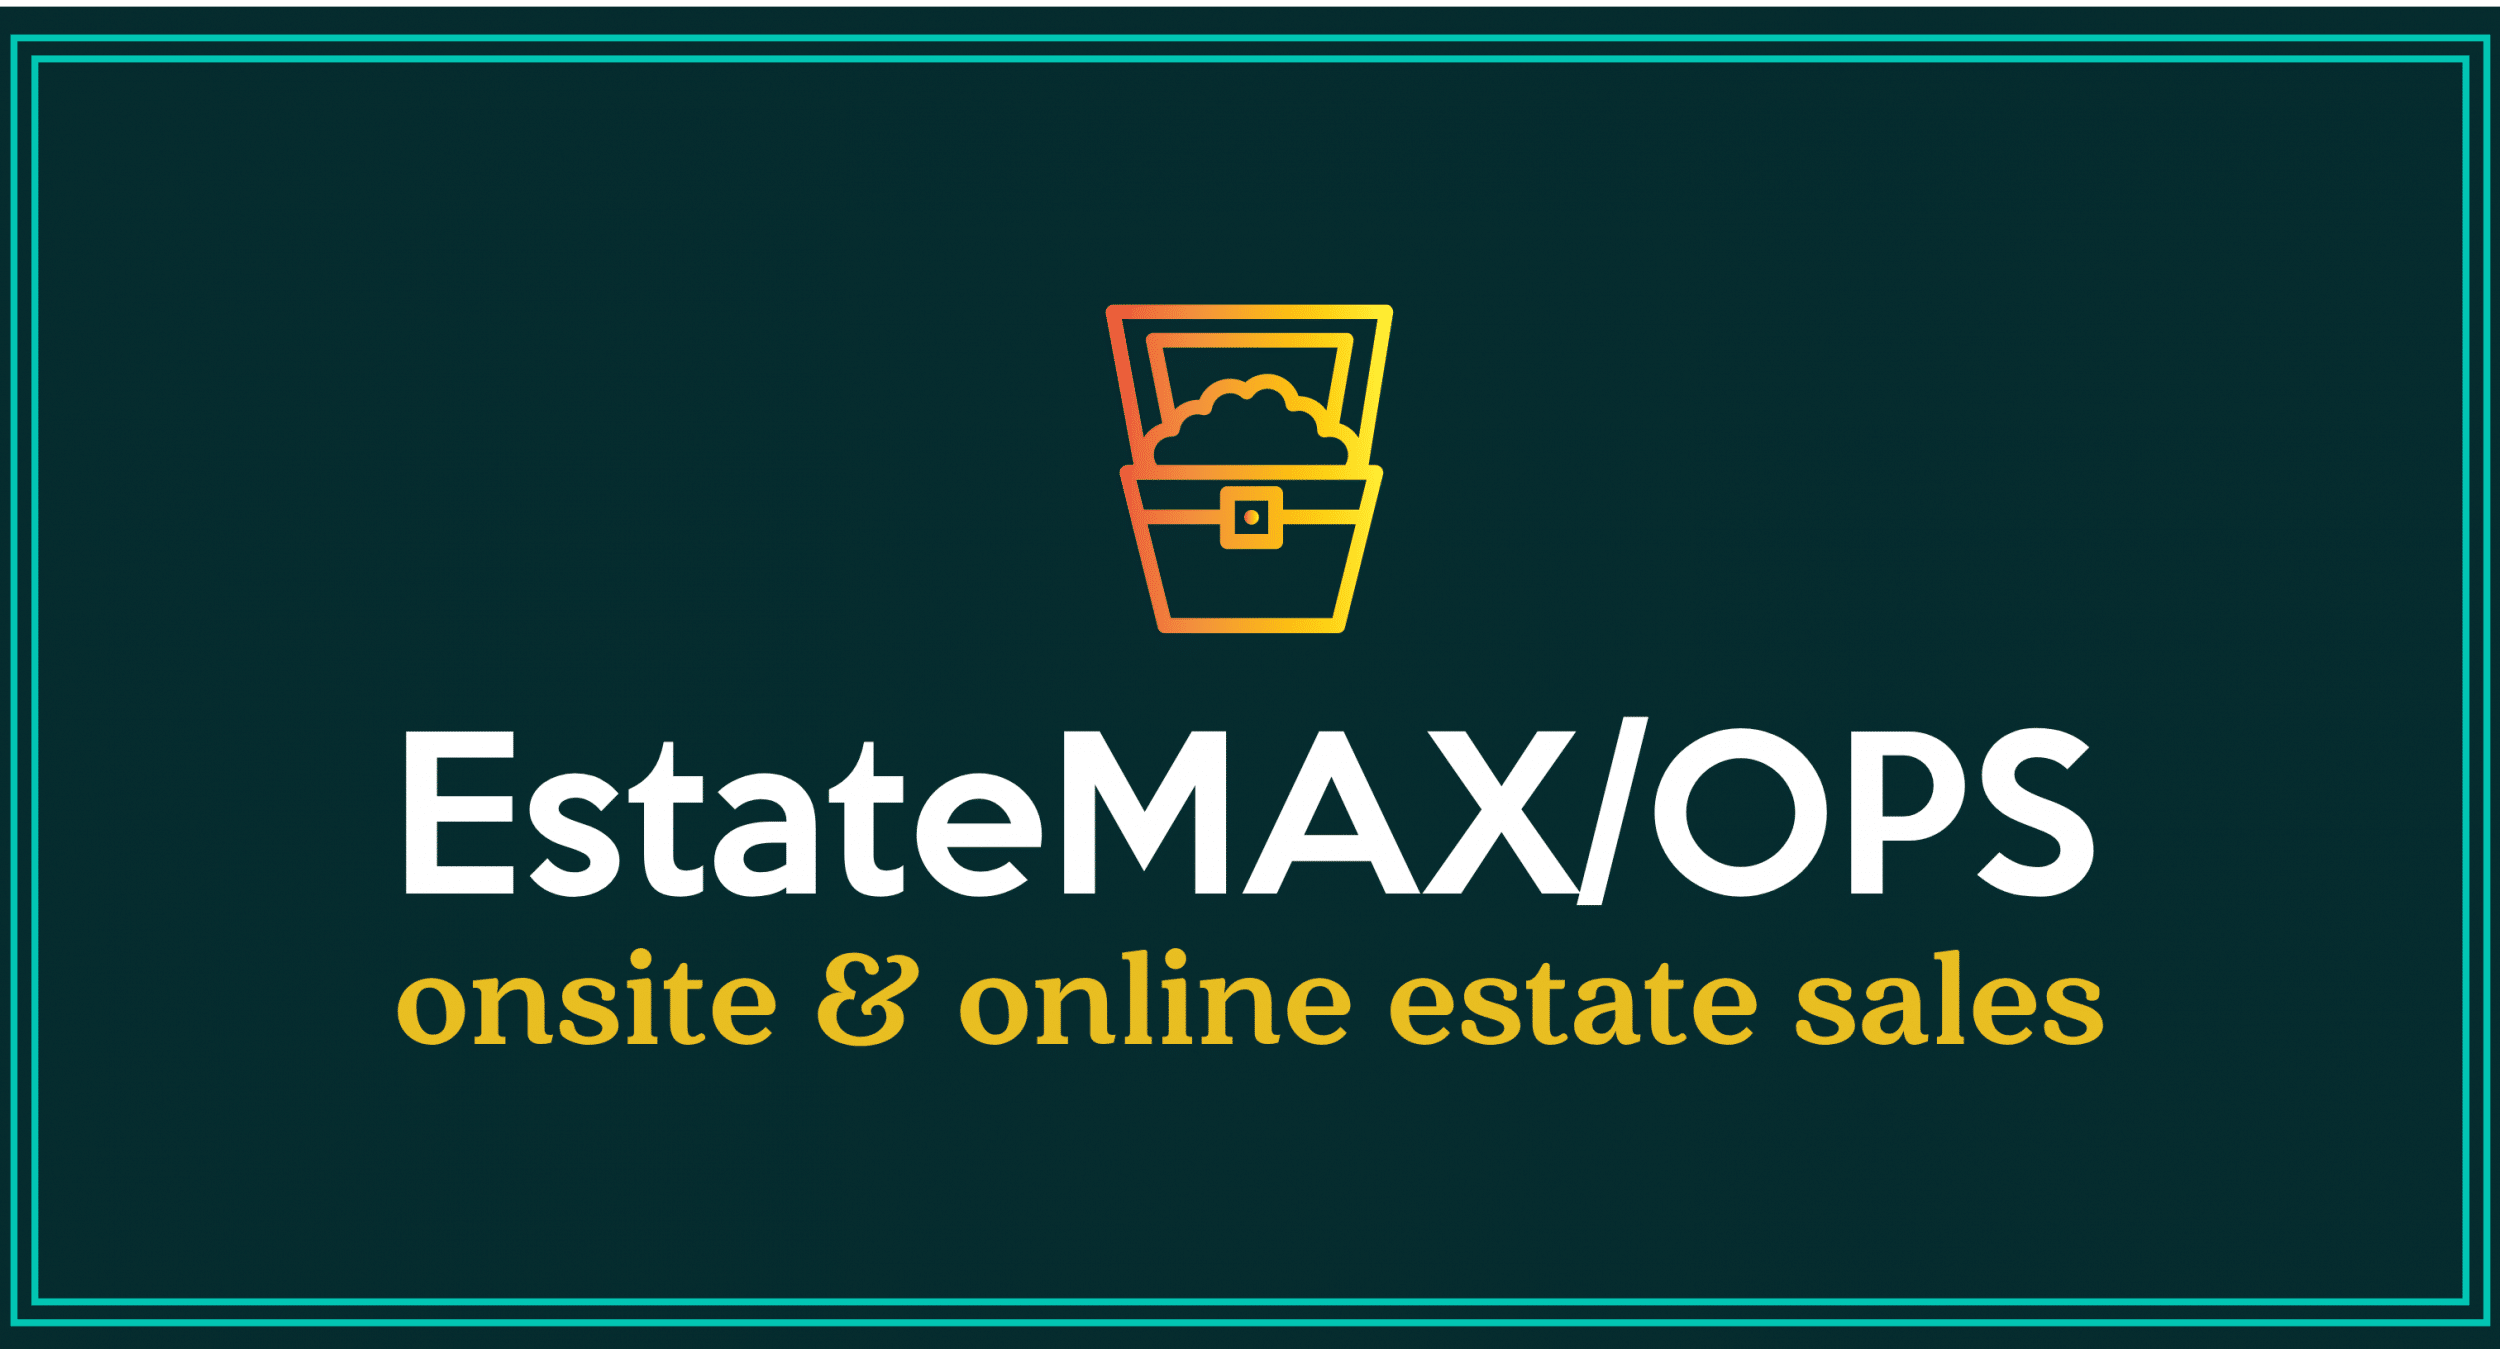 EstateMax/OPS : Estate & Downsizing Sales, Personal Property Liquidations, Transitions, All Details Handled! 844-378-MAX1